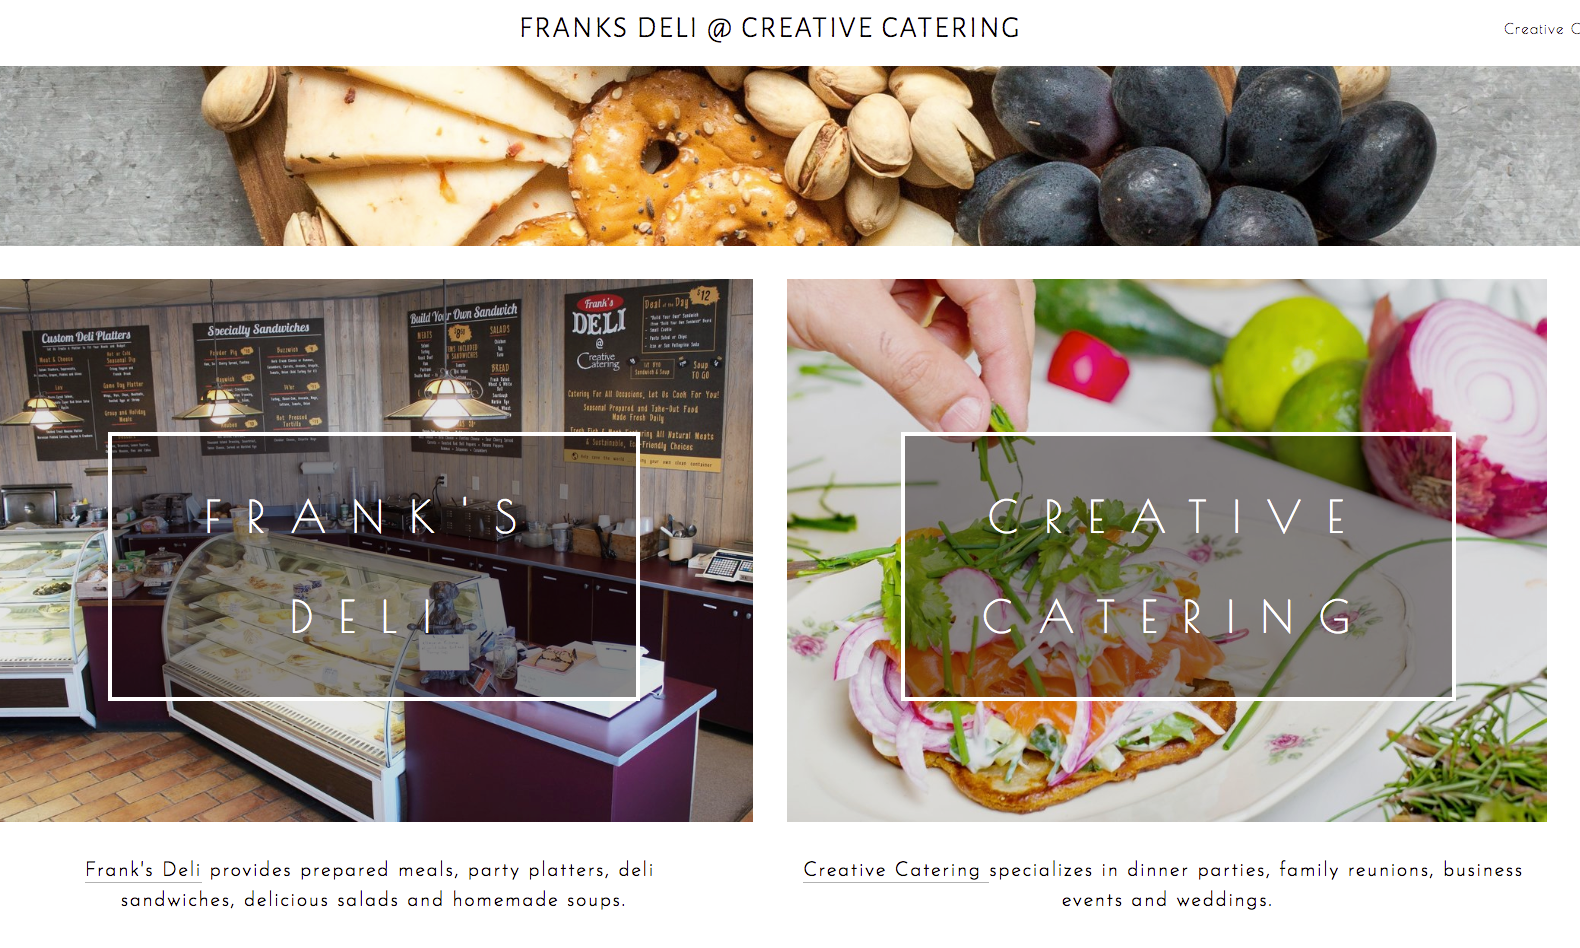 Frank's Deli @ Creative Catering - The needs for this website provided the unique challenge of creating two websites in one. A special thanks to Magnified Joy for providing gorgeous wedding images!